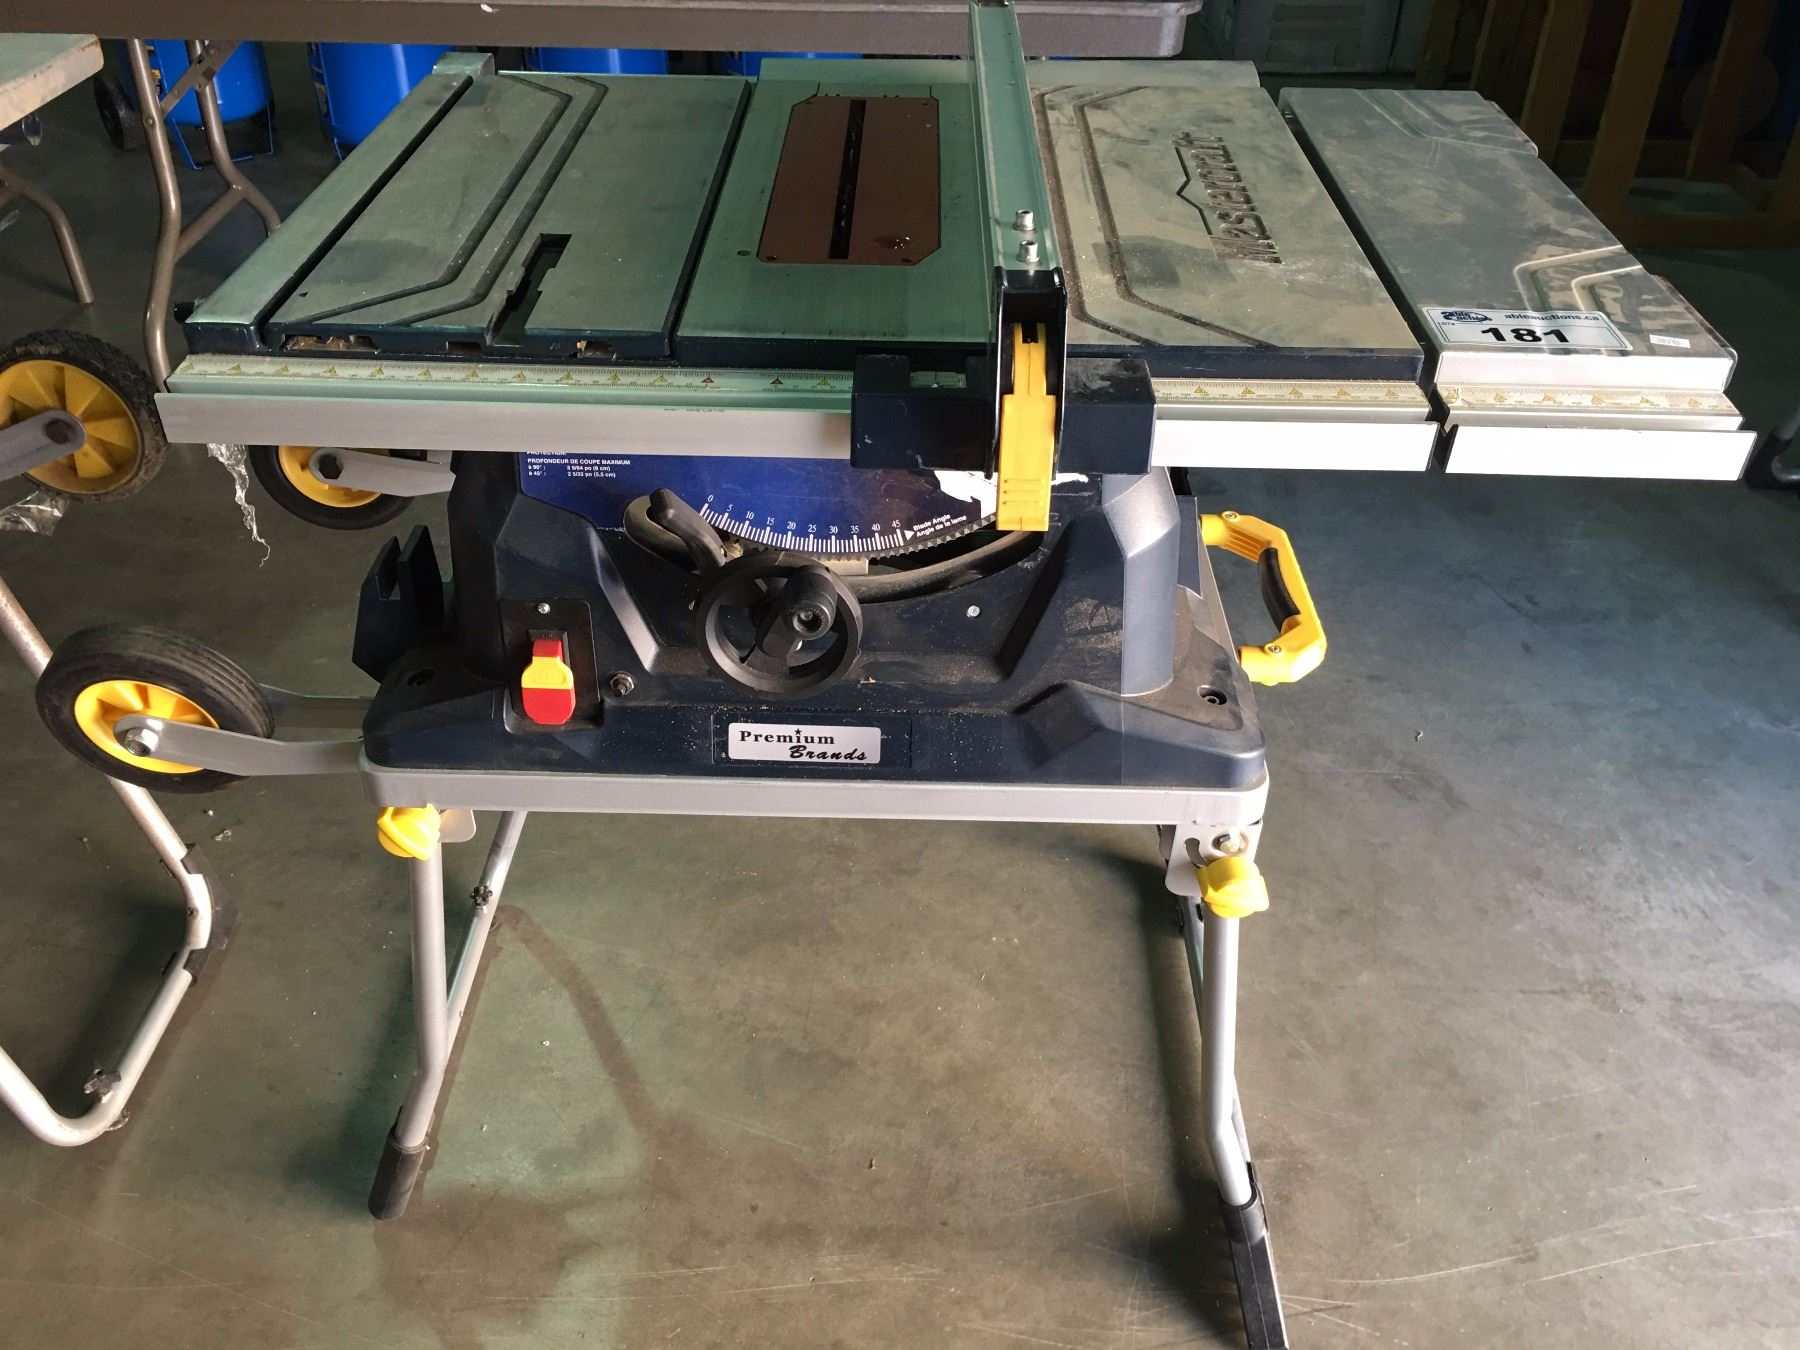 hight resolution of mastercraft 10 table saw with fold roll stand some parts mastercraft 10 inch table saw parts mastercraft 10 table saw diagram